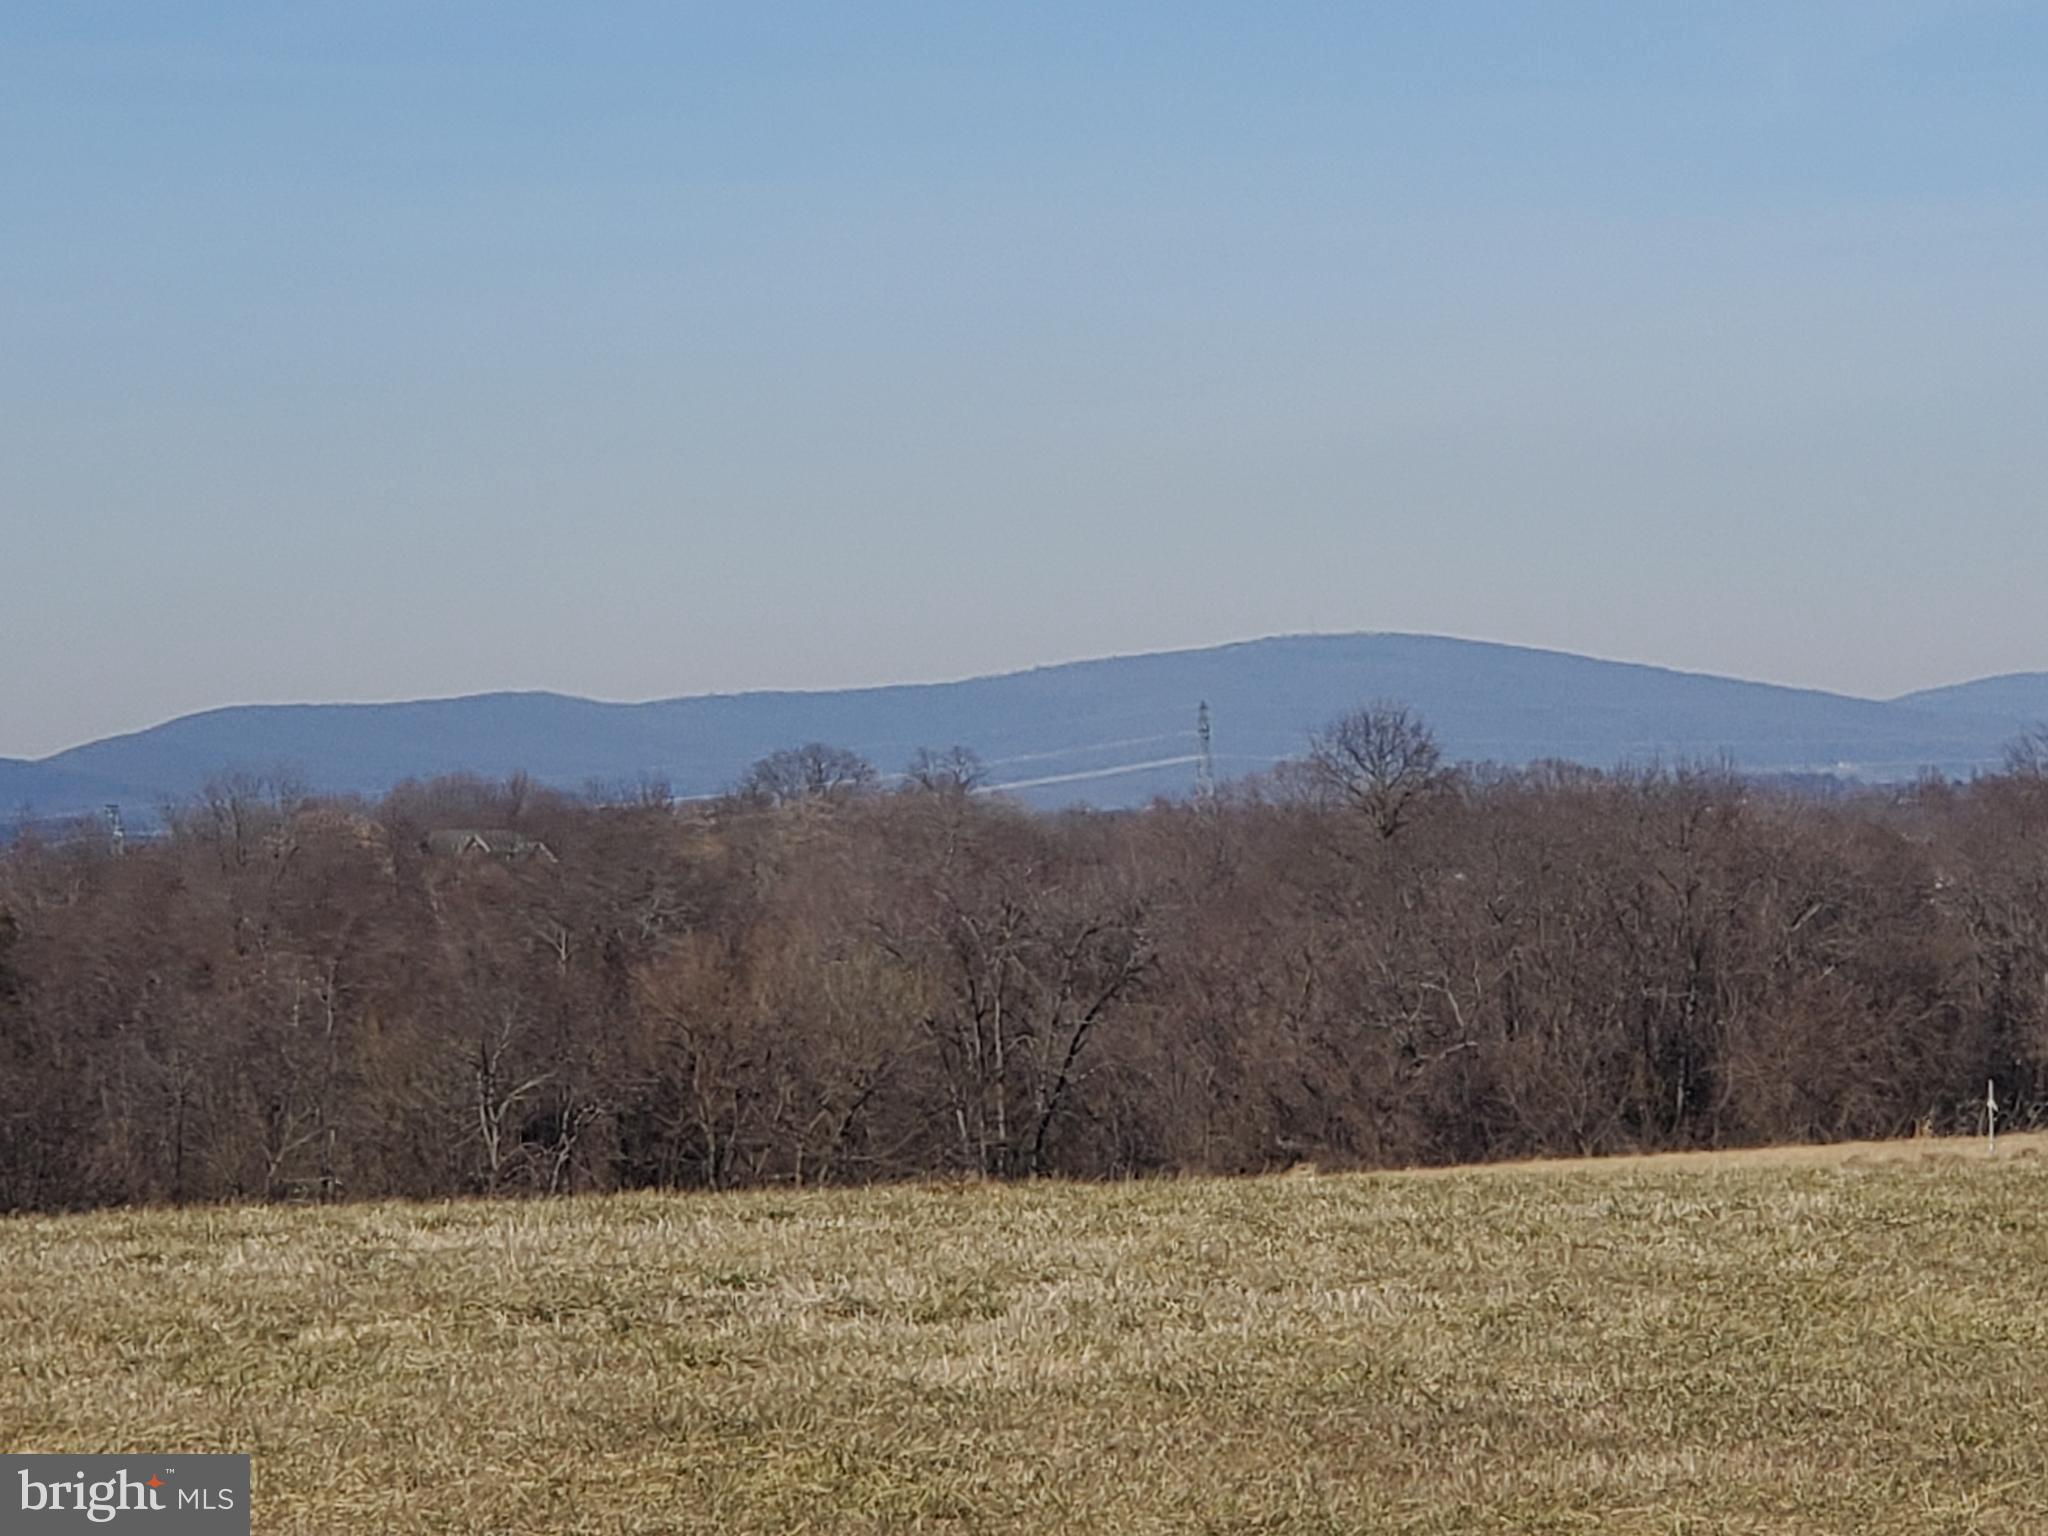 5 Contiguous Lots for sale together.  Approx 3+ acres each with outstanding mountain and pastoral views. Lots 2-4 have access off Folly Lane on future Keesling Farm Lane (30 ft Private access easement), and Lots 5 &  6 can be accessed off Ropp Lane on a 24 ft private access easement.  A few mins to Lovettsville, va  or Point of Rocks, MD and close to the Marc Train, 20 mins to Leesburg.